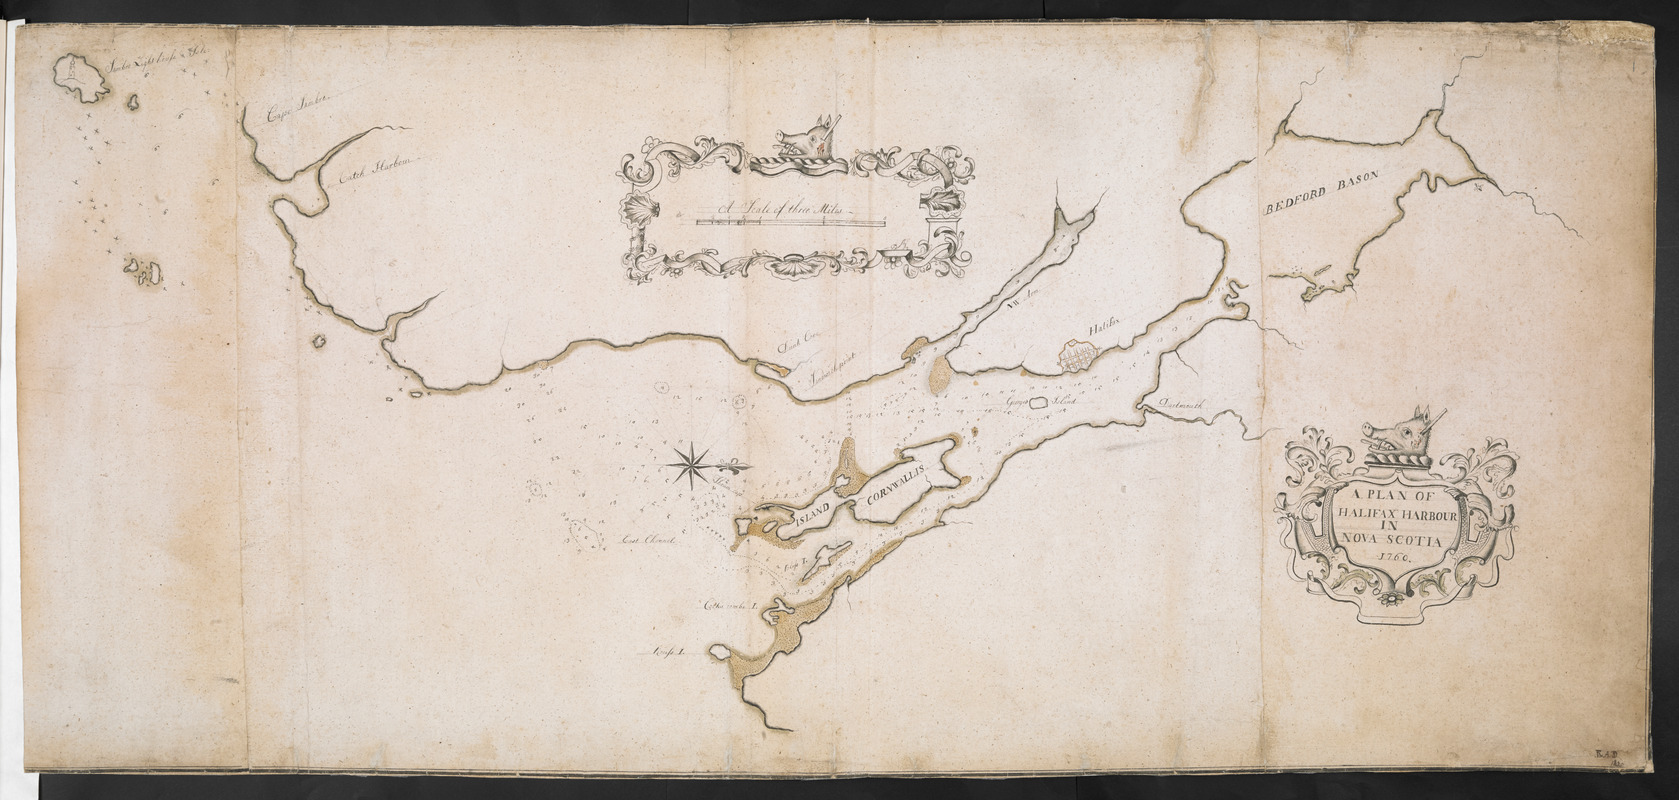 A PLAN OF HALIFAX HARBOUR IN NOVA SCOTIA 1760